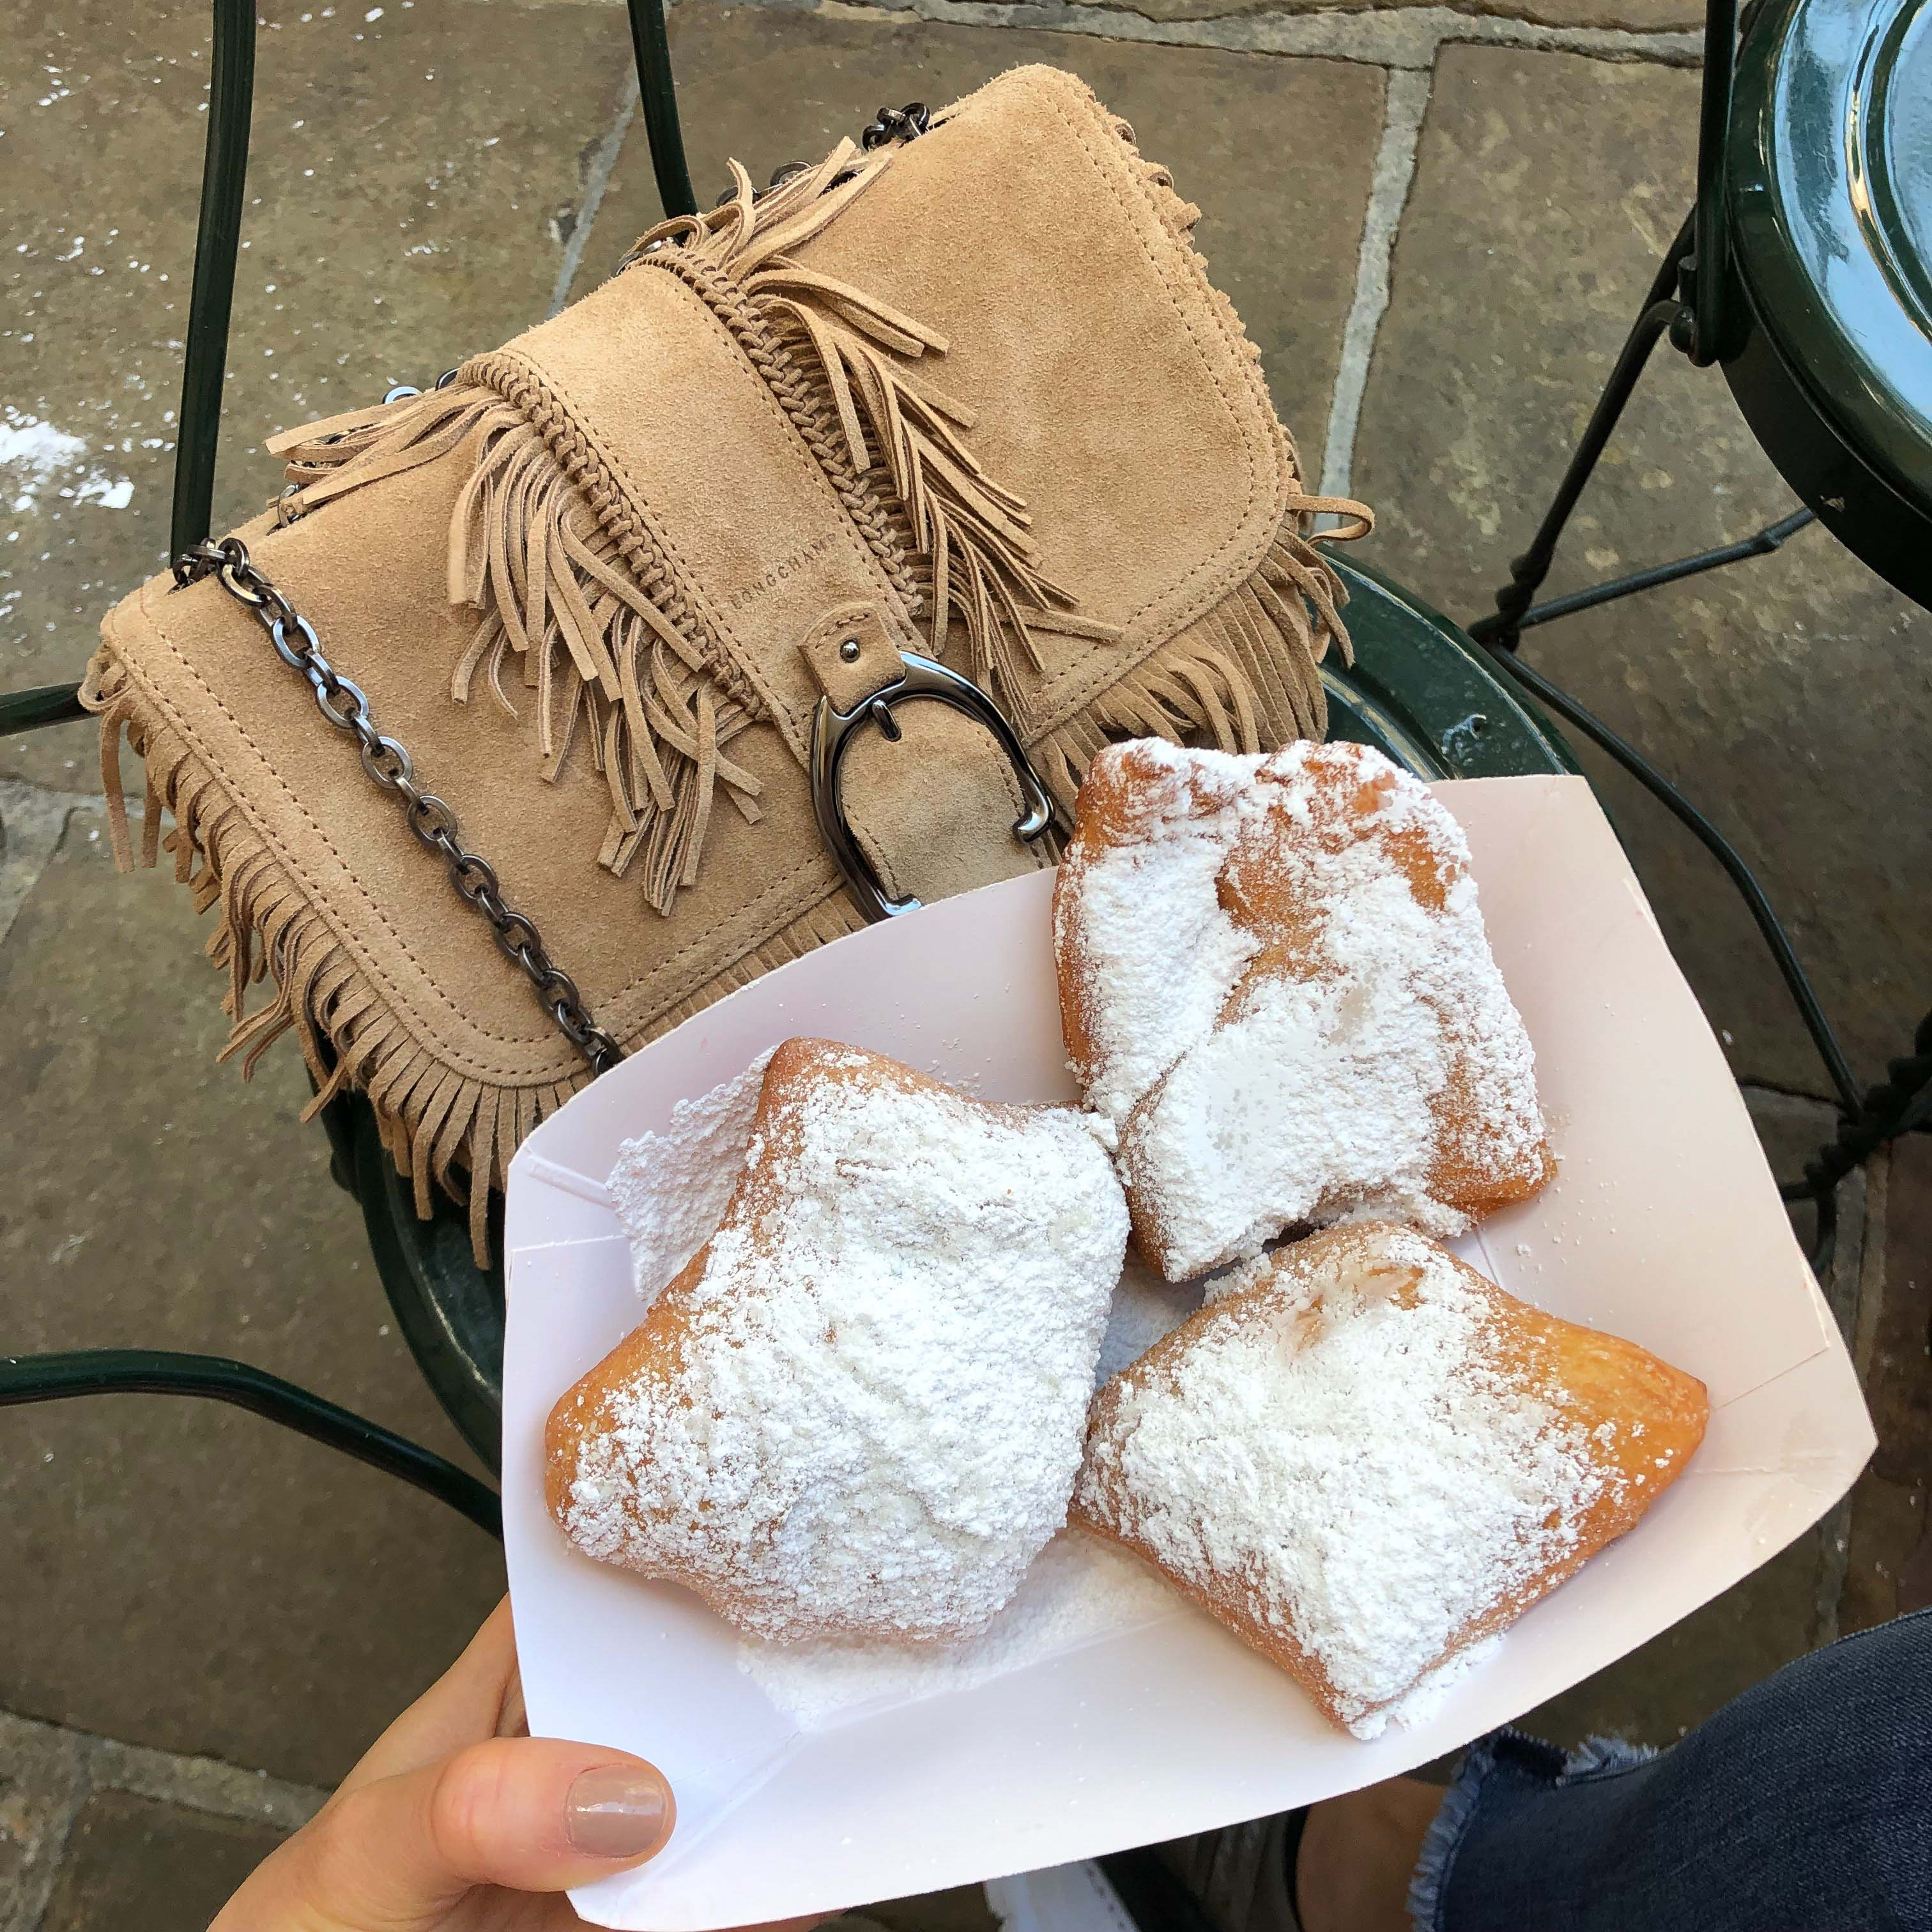 Cafe Beignet food in New Orleans - French Quarter - New Orleans Travel Guide - NOLA City guide - by fashion blogger Julia Comil